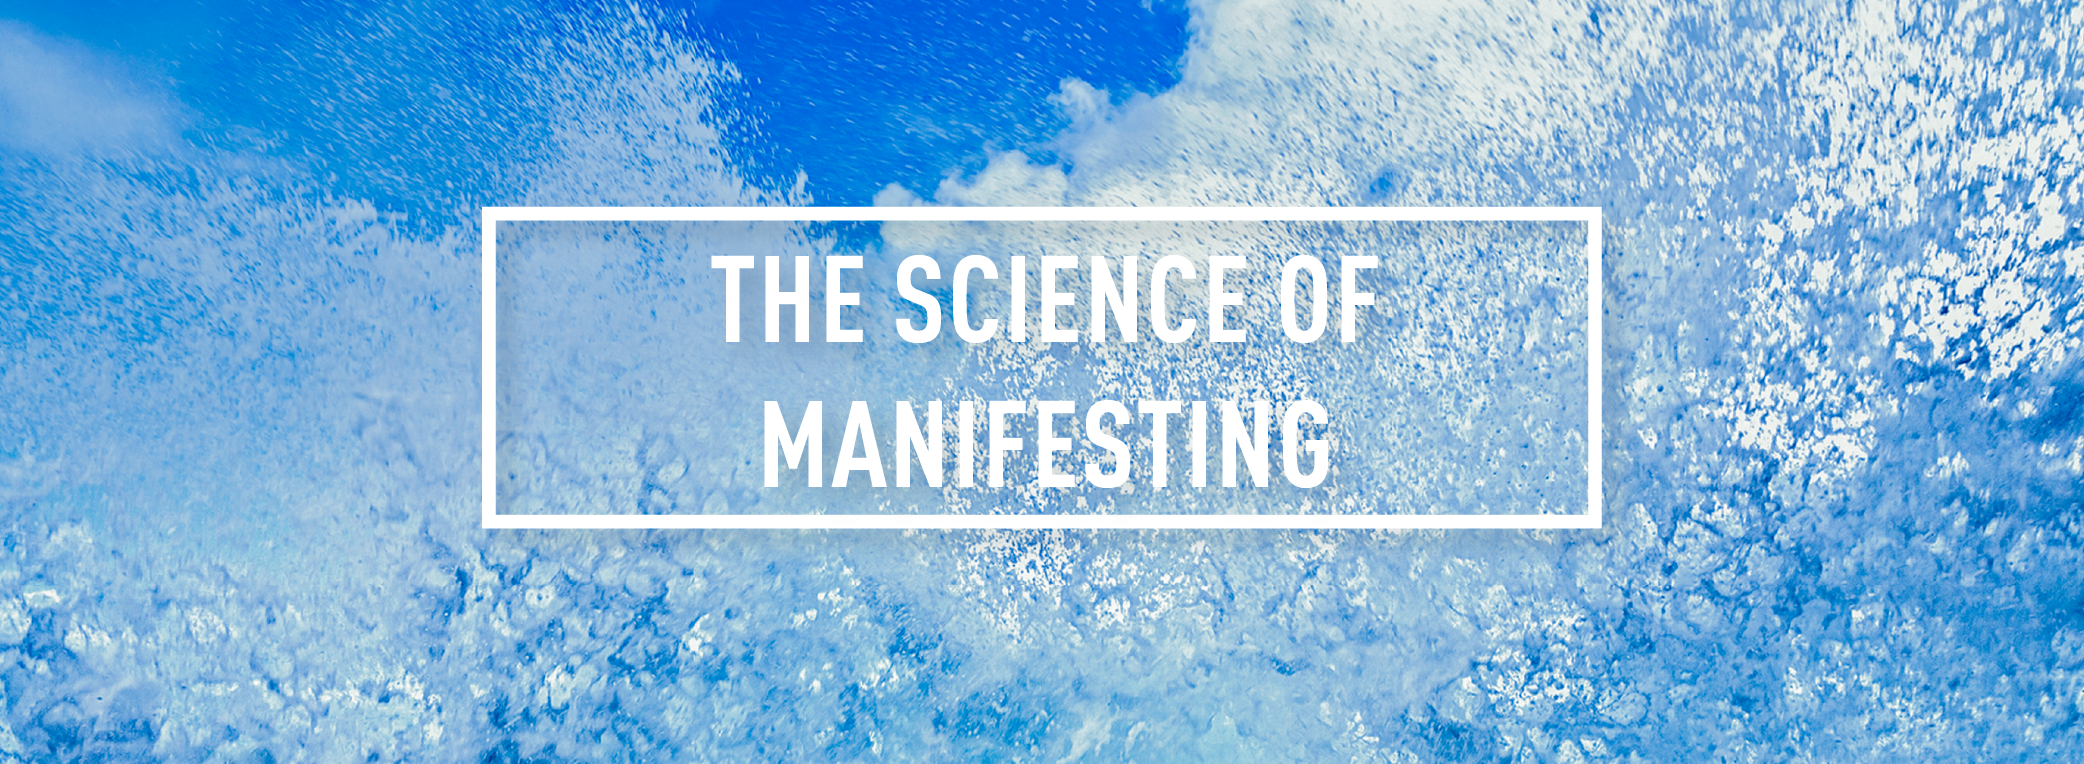 THE SCIENCE OF MANIFESTING_Webpage Header